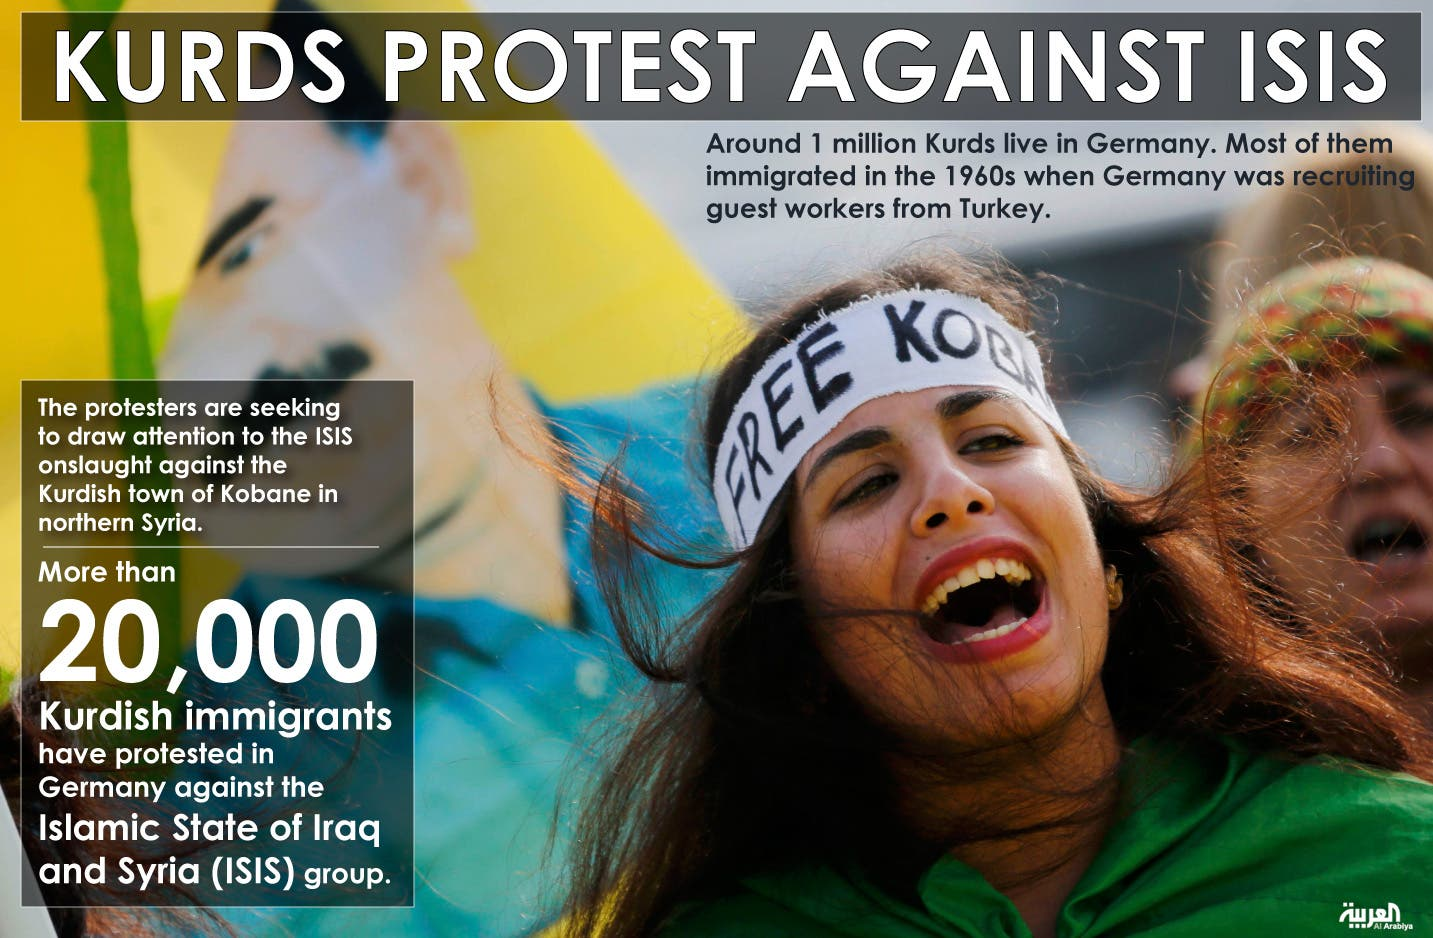 Infographic: Kurds protest against ISIS